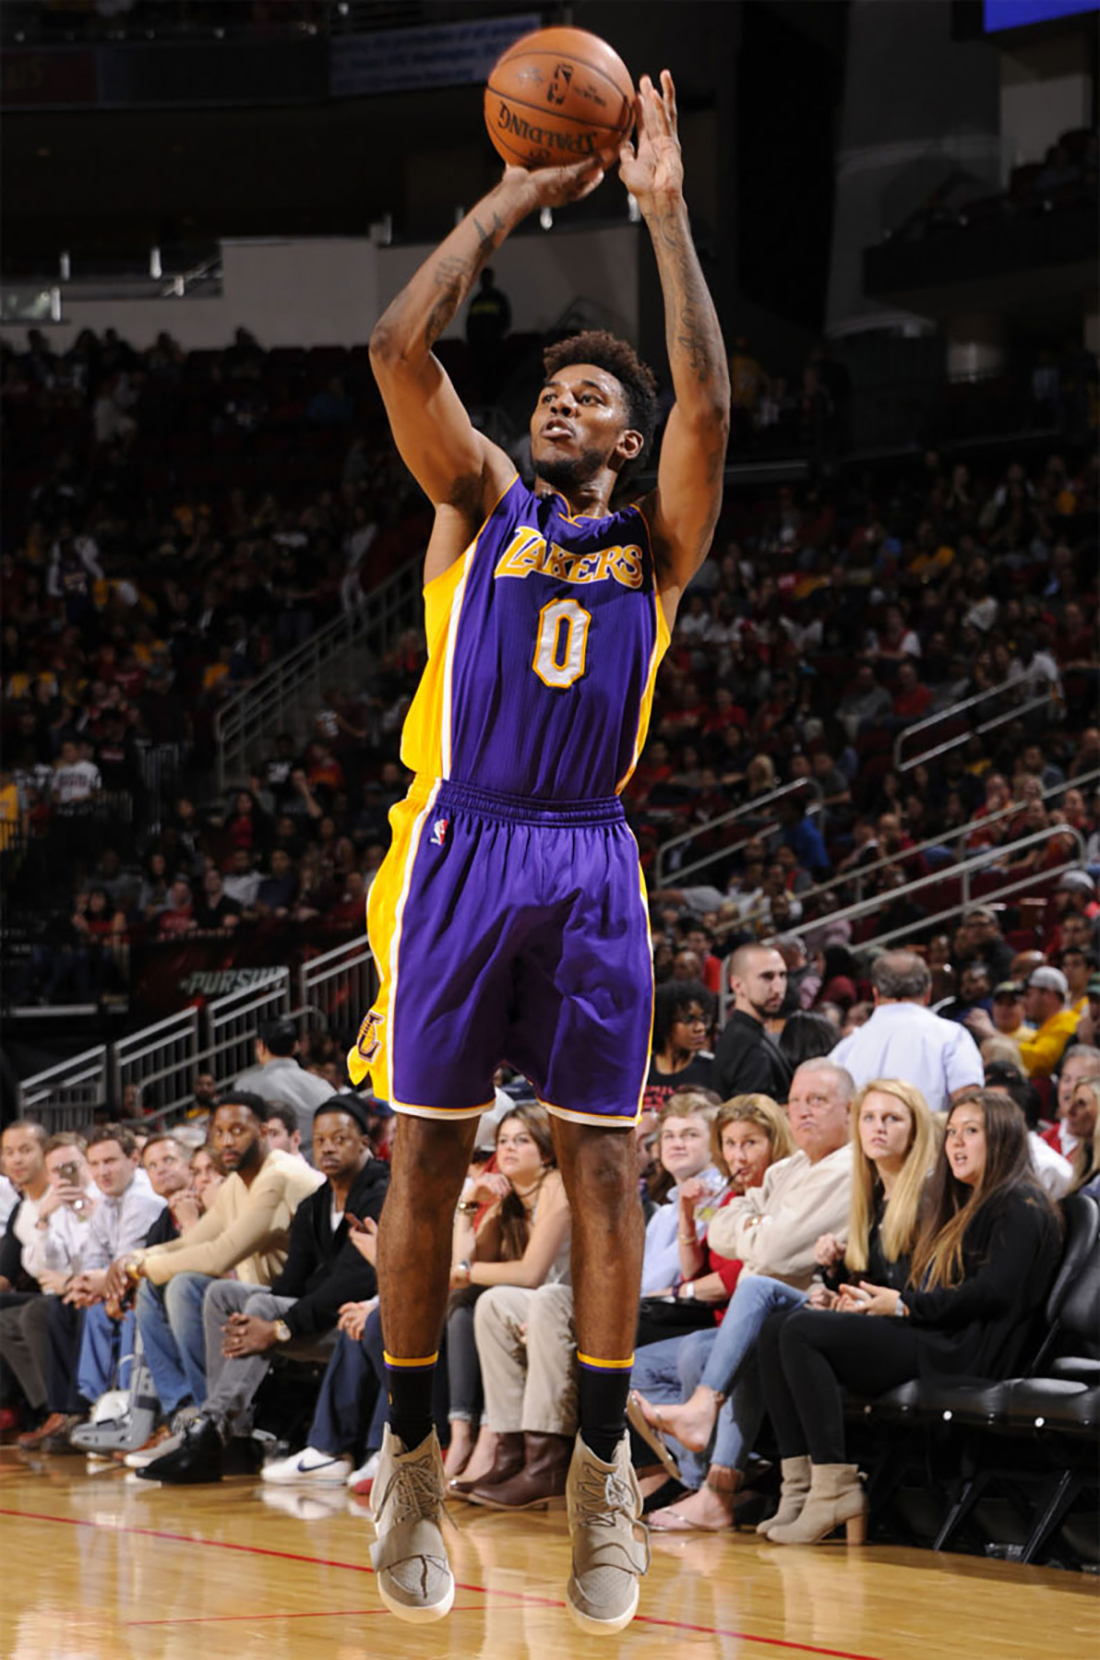 Nick Young - Los Ángeles Lakers. Adidas Yeezy Boost 750.